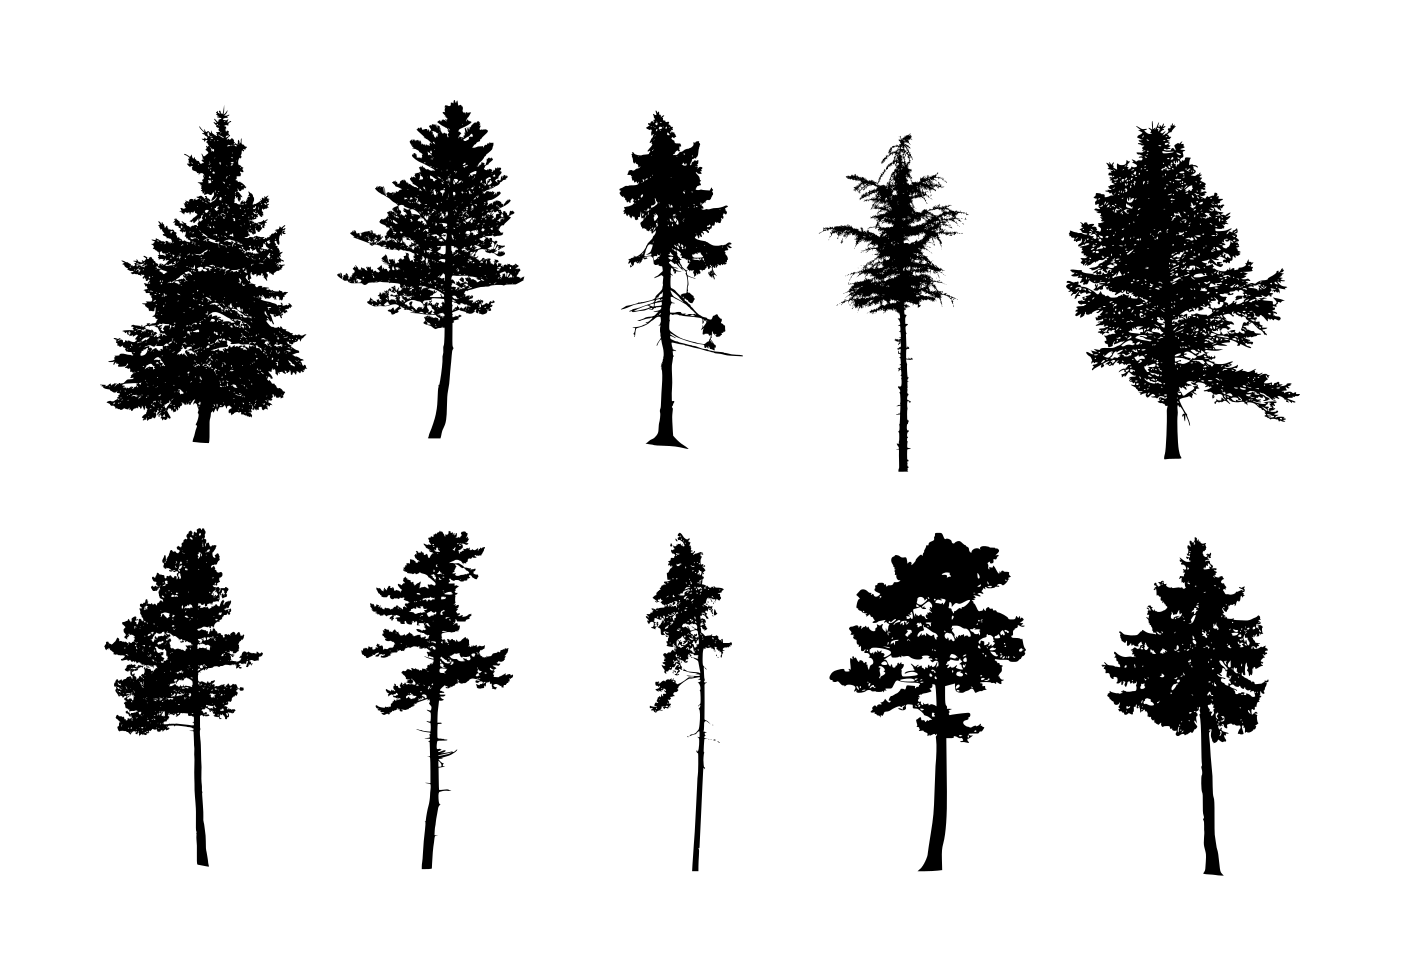 Resolution 735 1200 Px File Format Png File Size 119 84 Kb Free Download Pine Tree Silhouette 3 1 Pine Tree Silhouette Tree Tattoo Side Pine Tree Tattoo